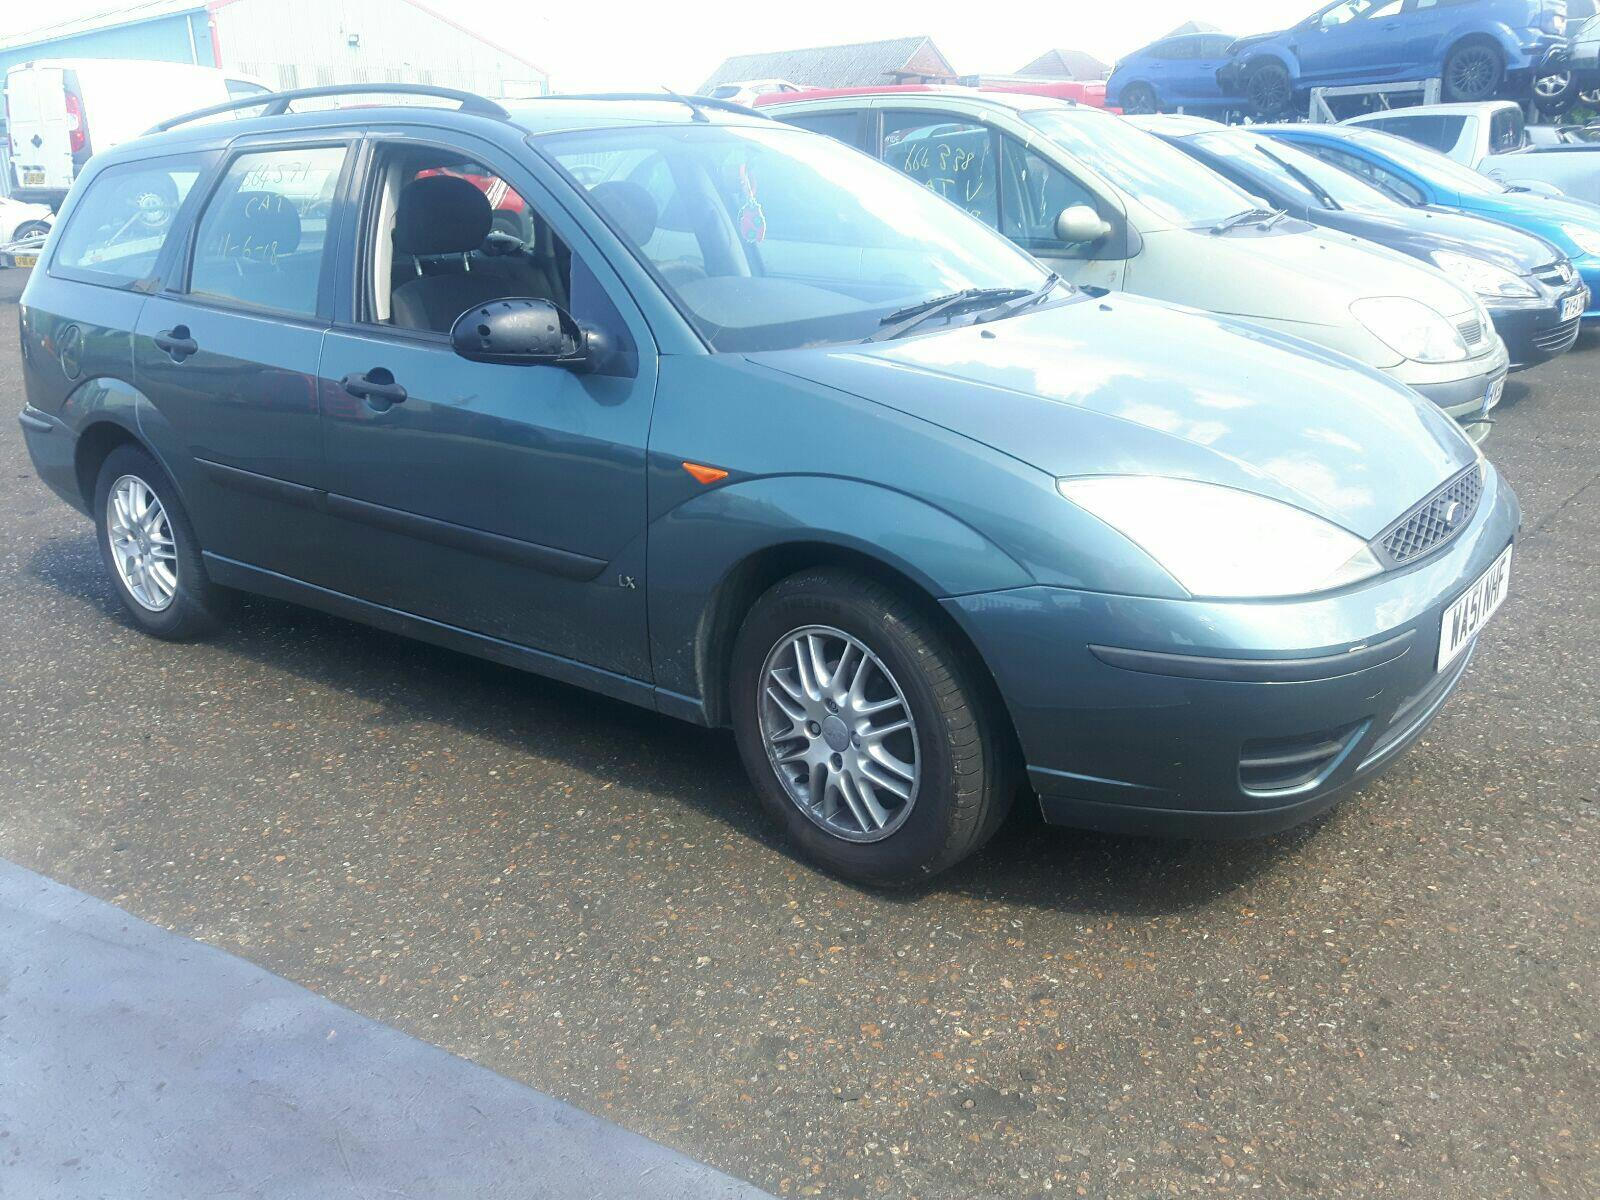 FORD FOCUS LX 5040504